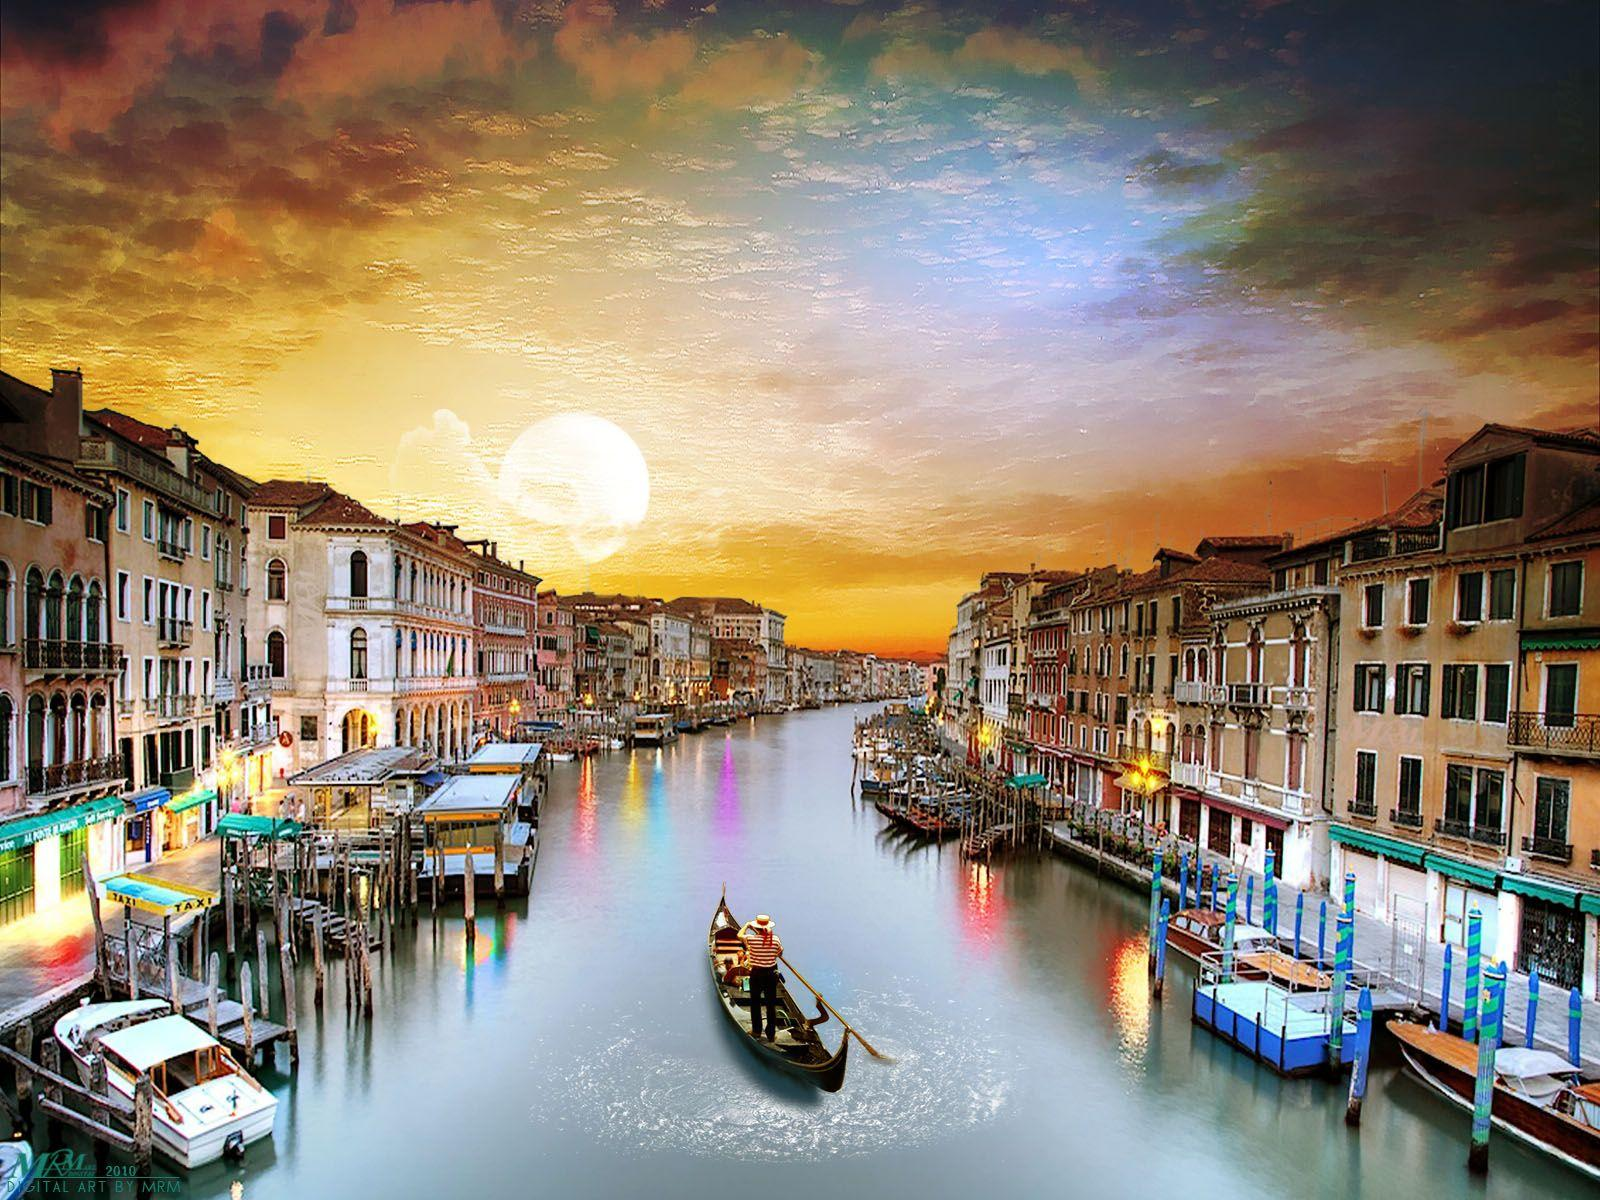 Italy Venezia Wallpaper - Shared by Immanuel | Scalsys